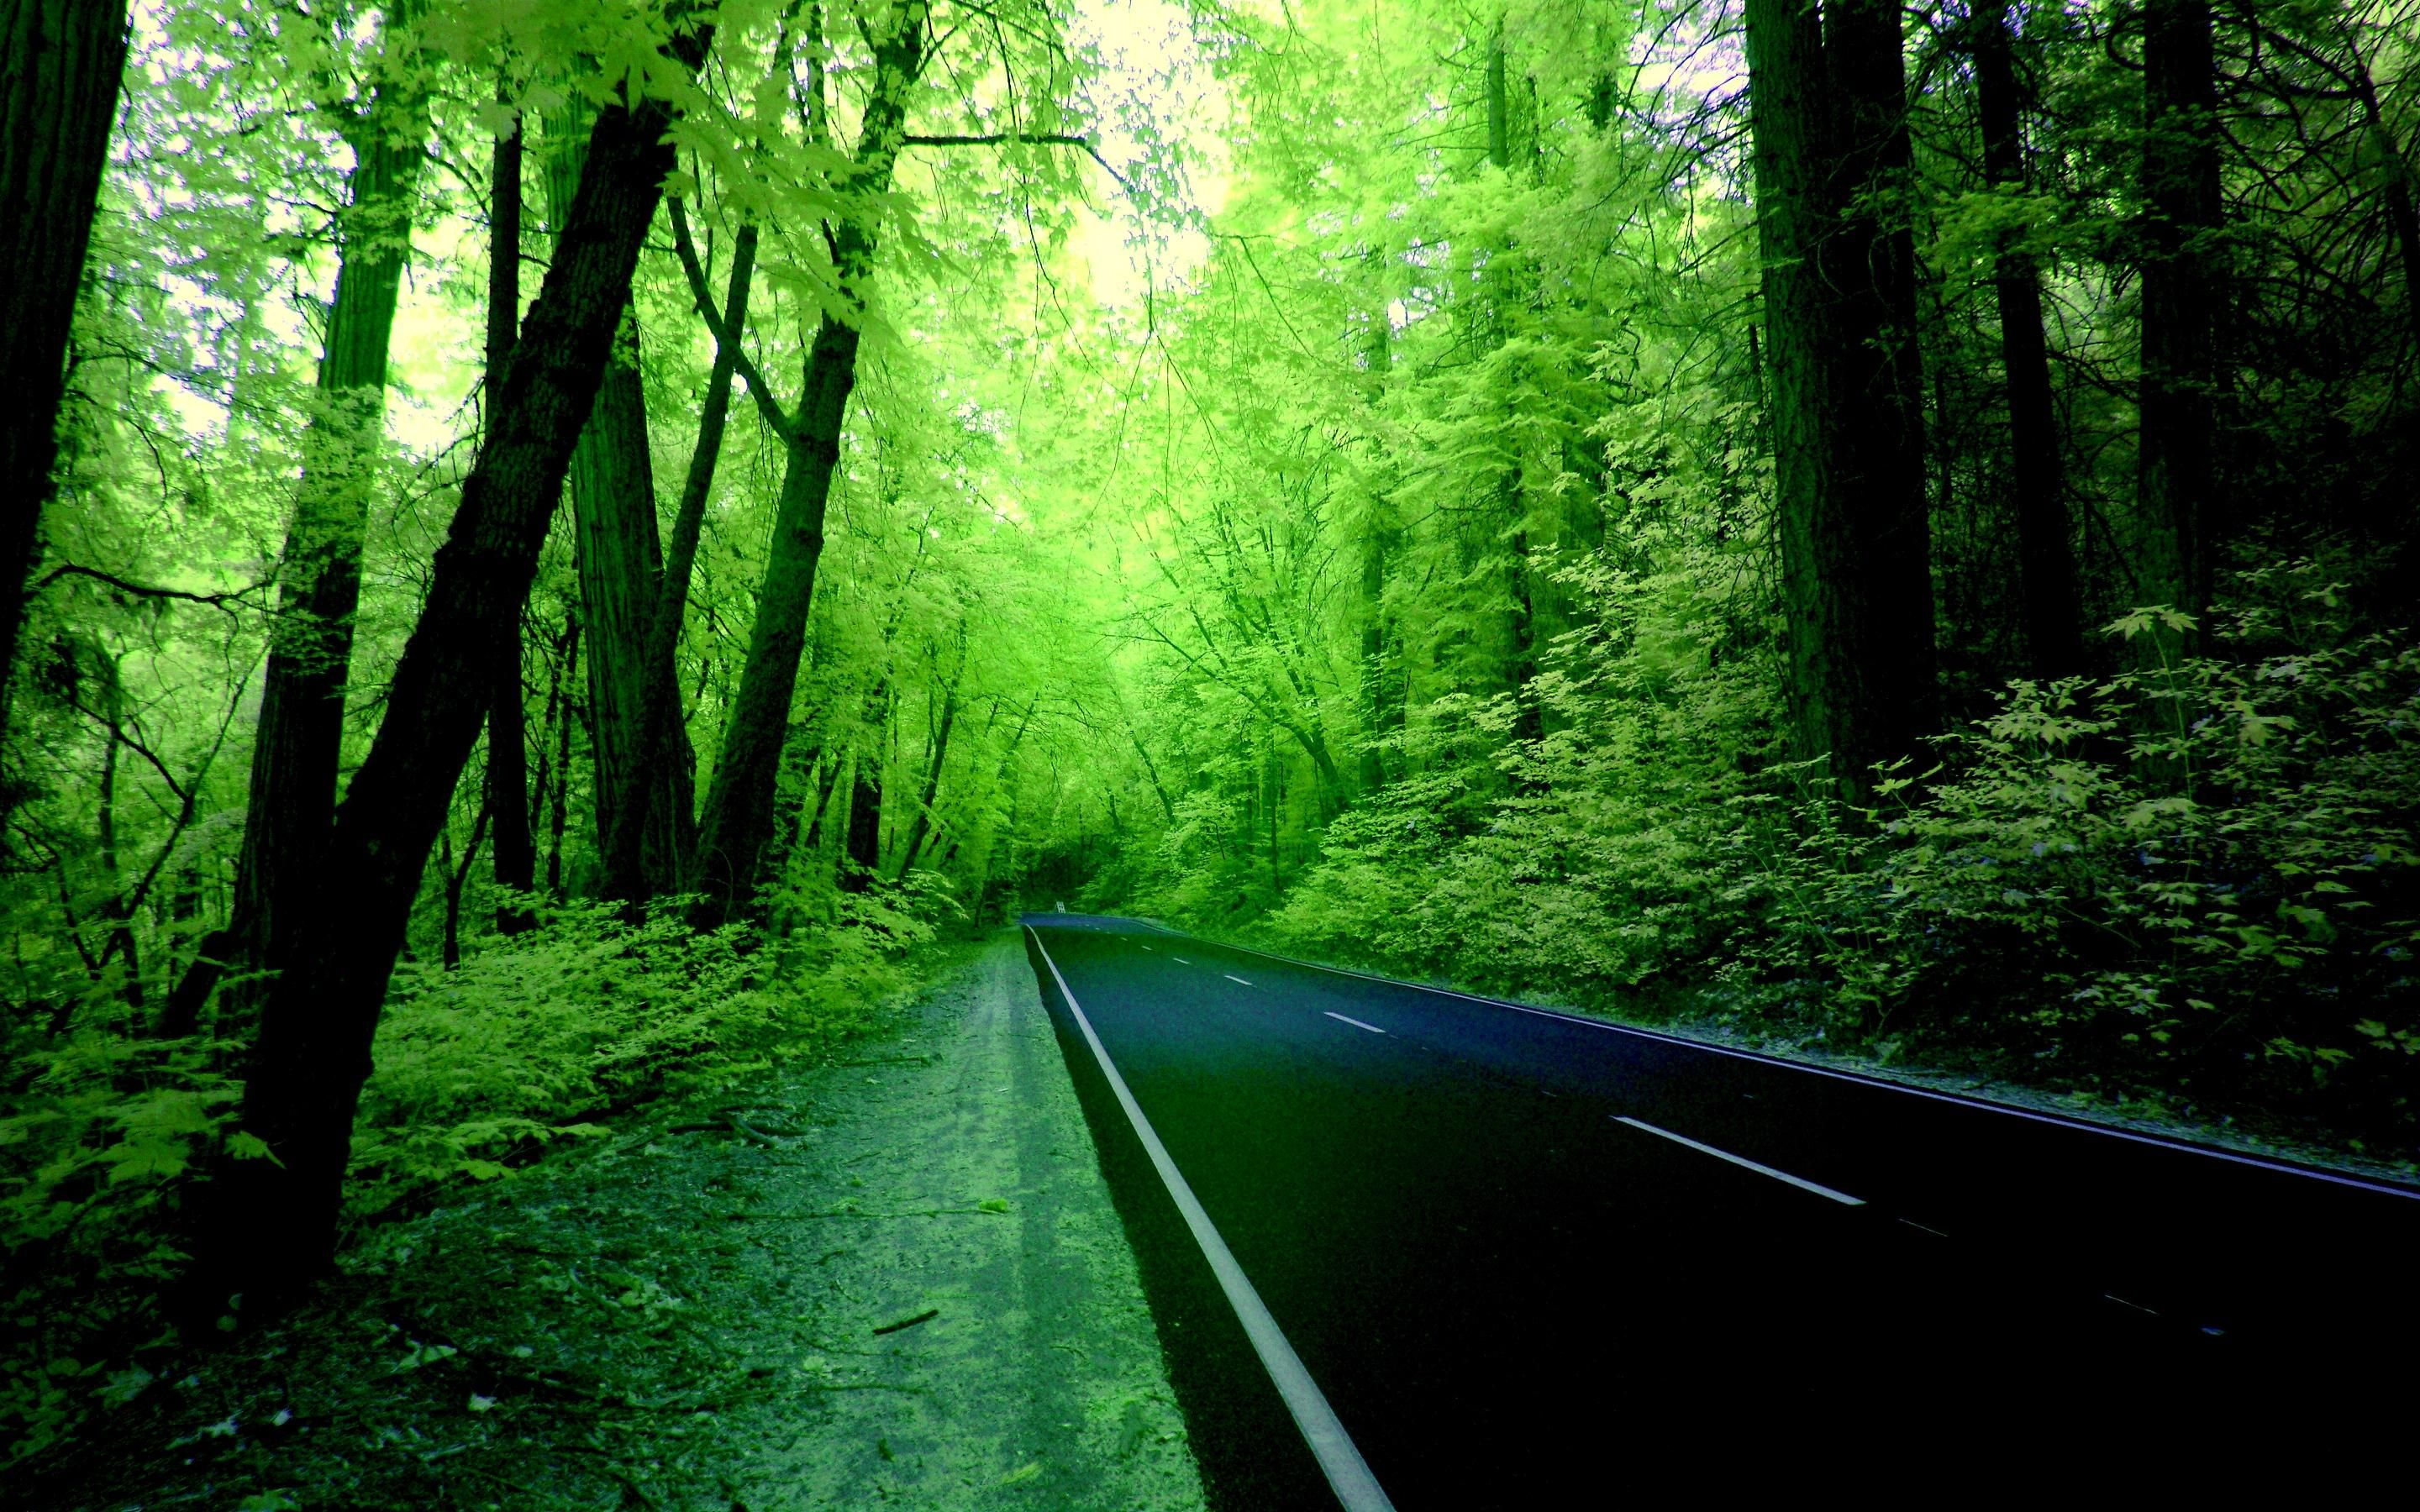 Green Forest Wallpaper Hd Background 9 HD Wallpapers art